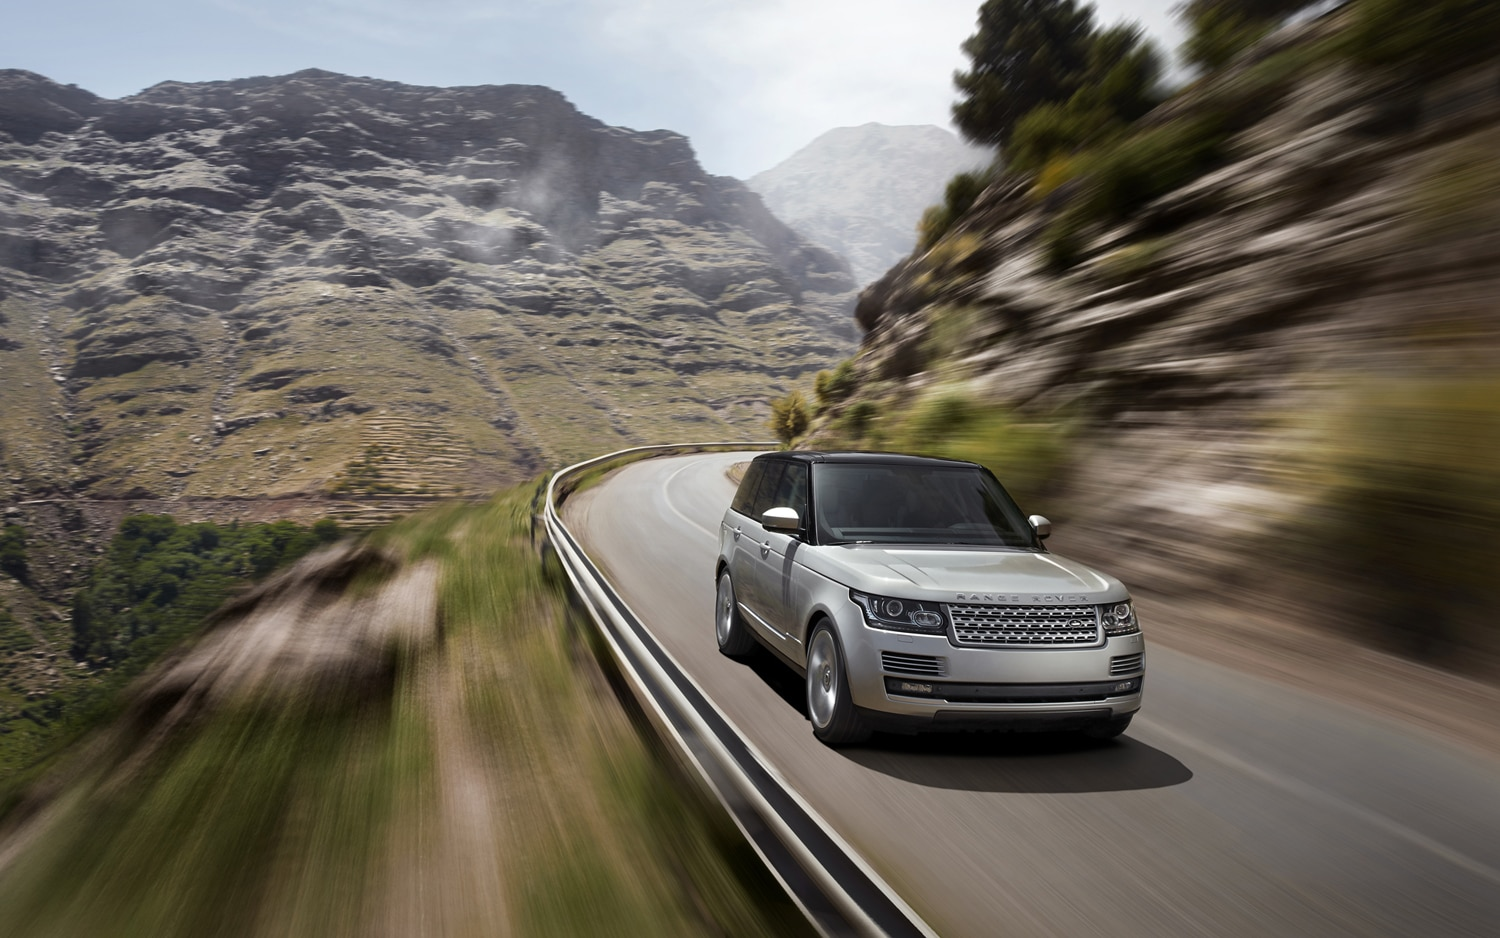 2013 Land Rover Range Rover Front End In Motion 3